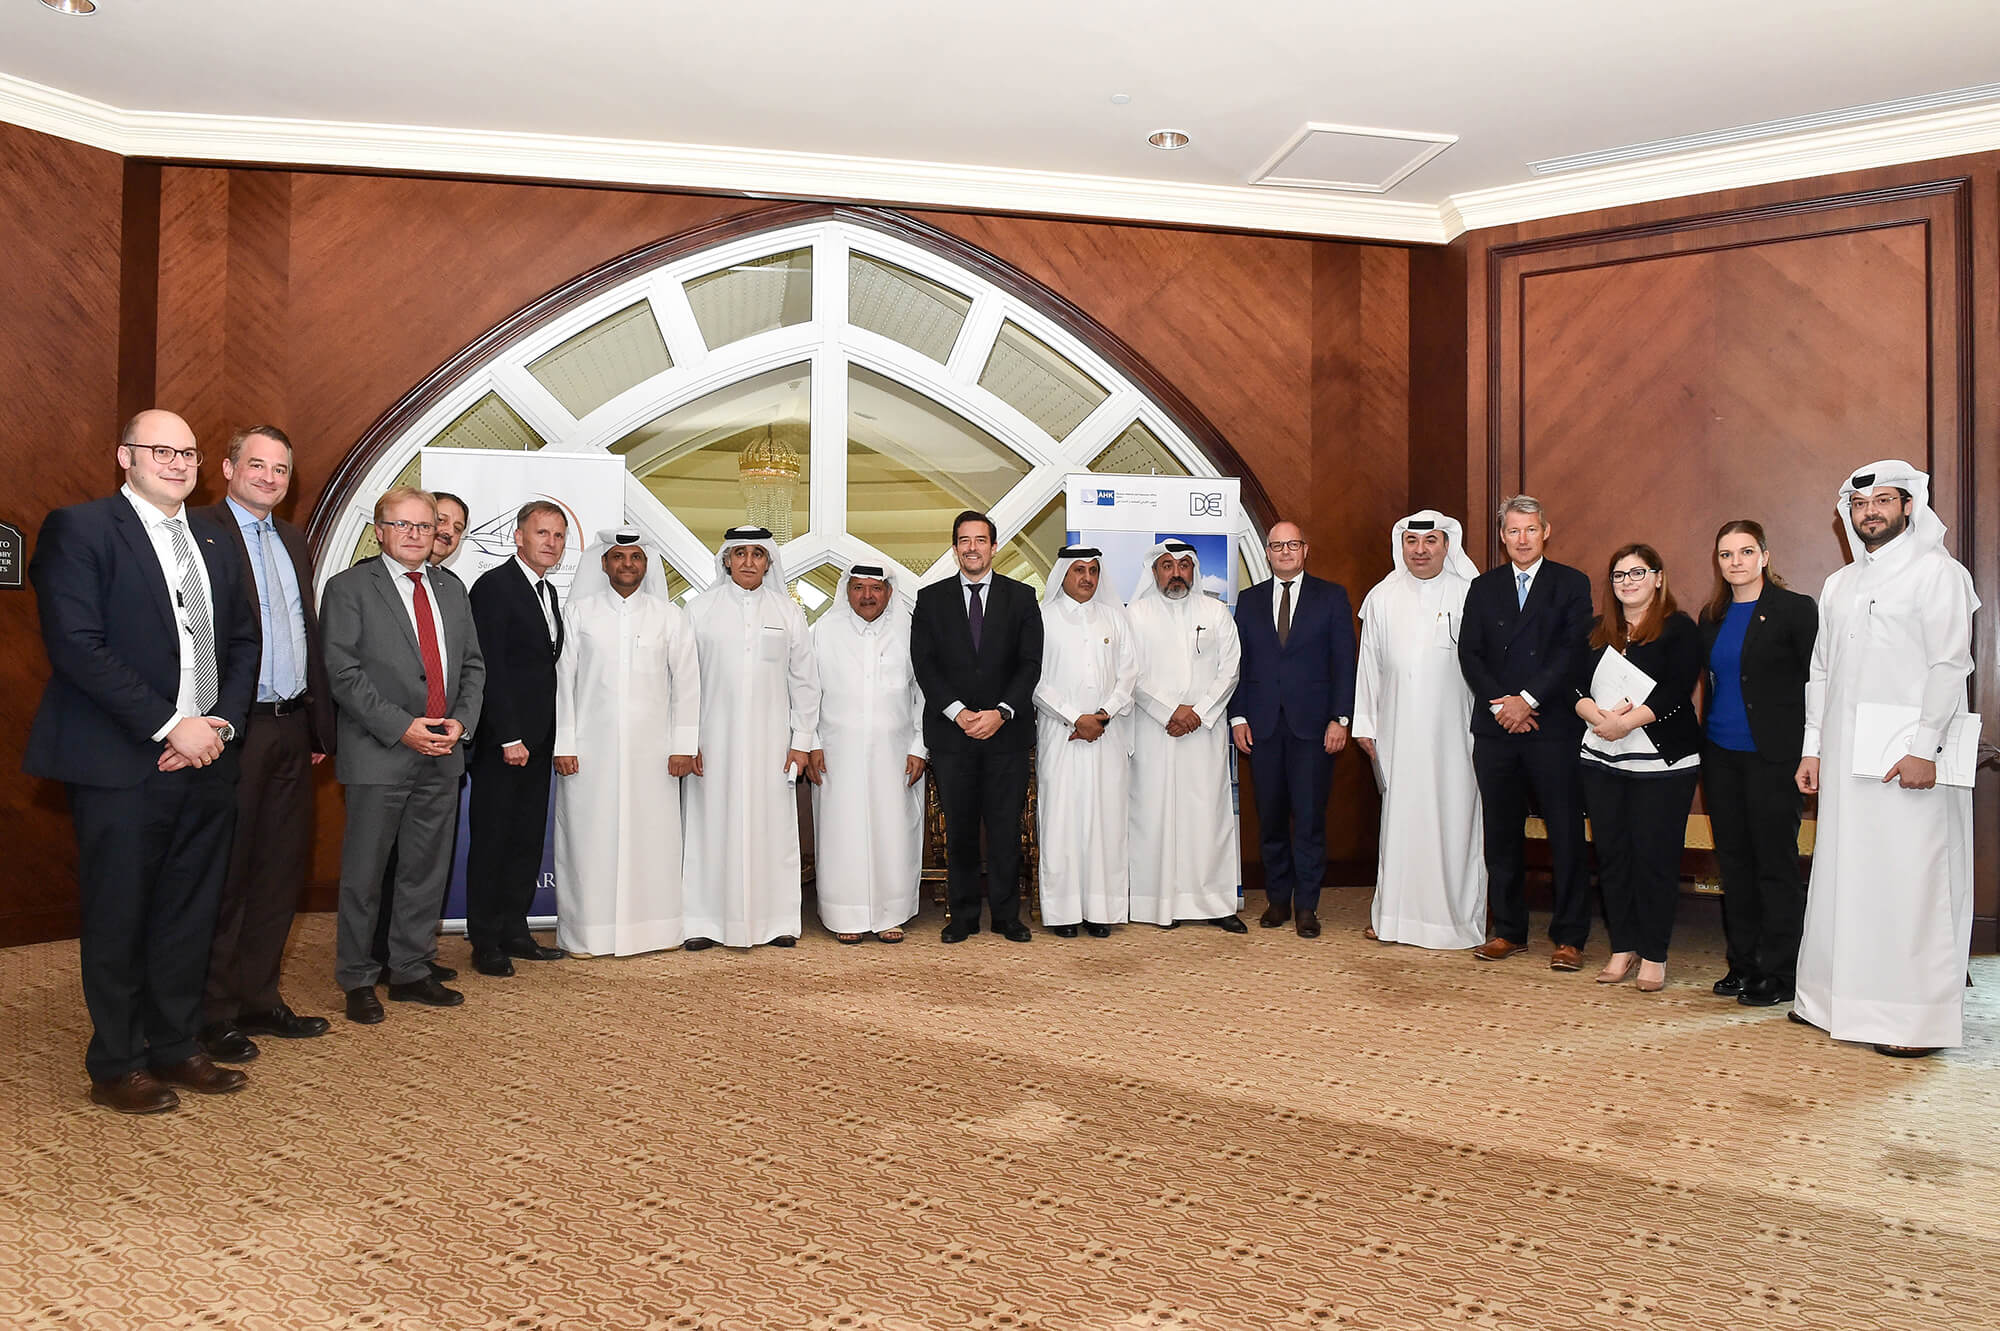 1st Constituent Meeting of the German Qatari Joint Task Force for Trade and Investment